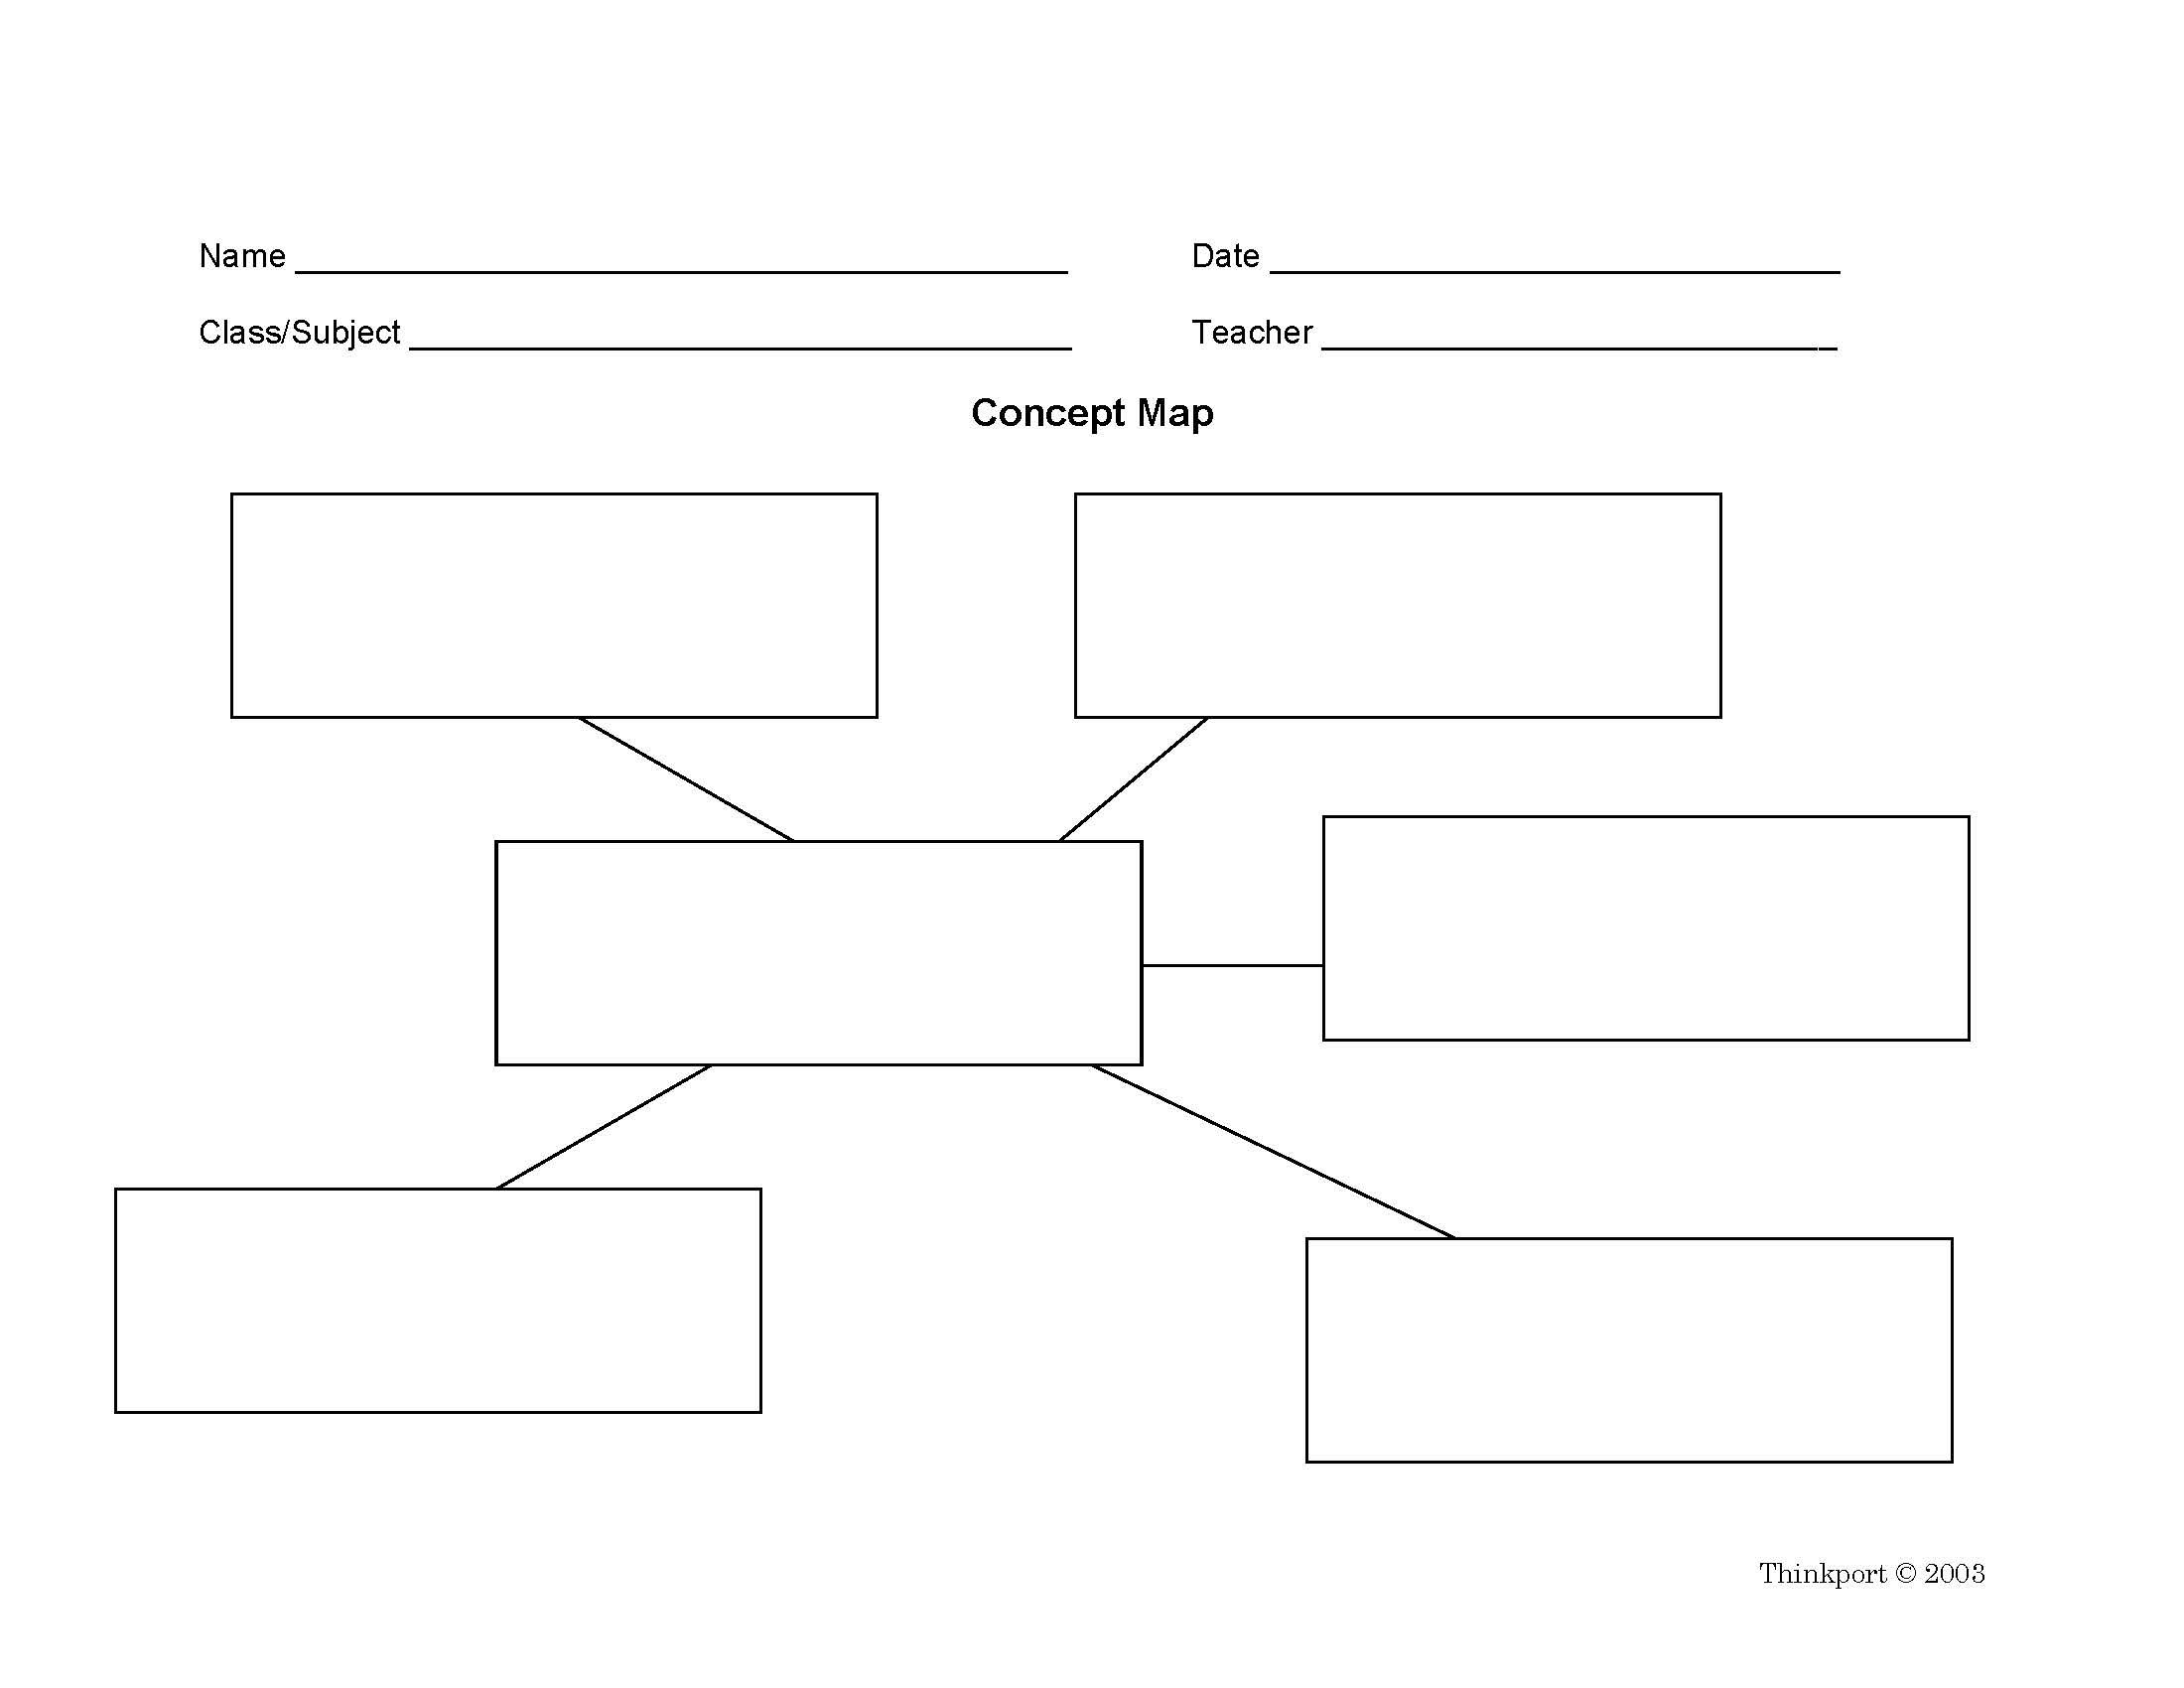 Concept Maps Organize The Main Ideas And Details Of A